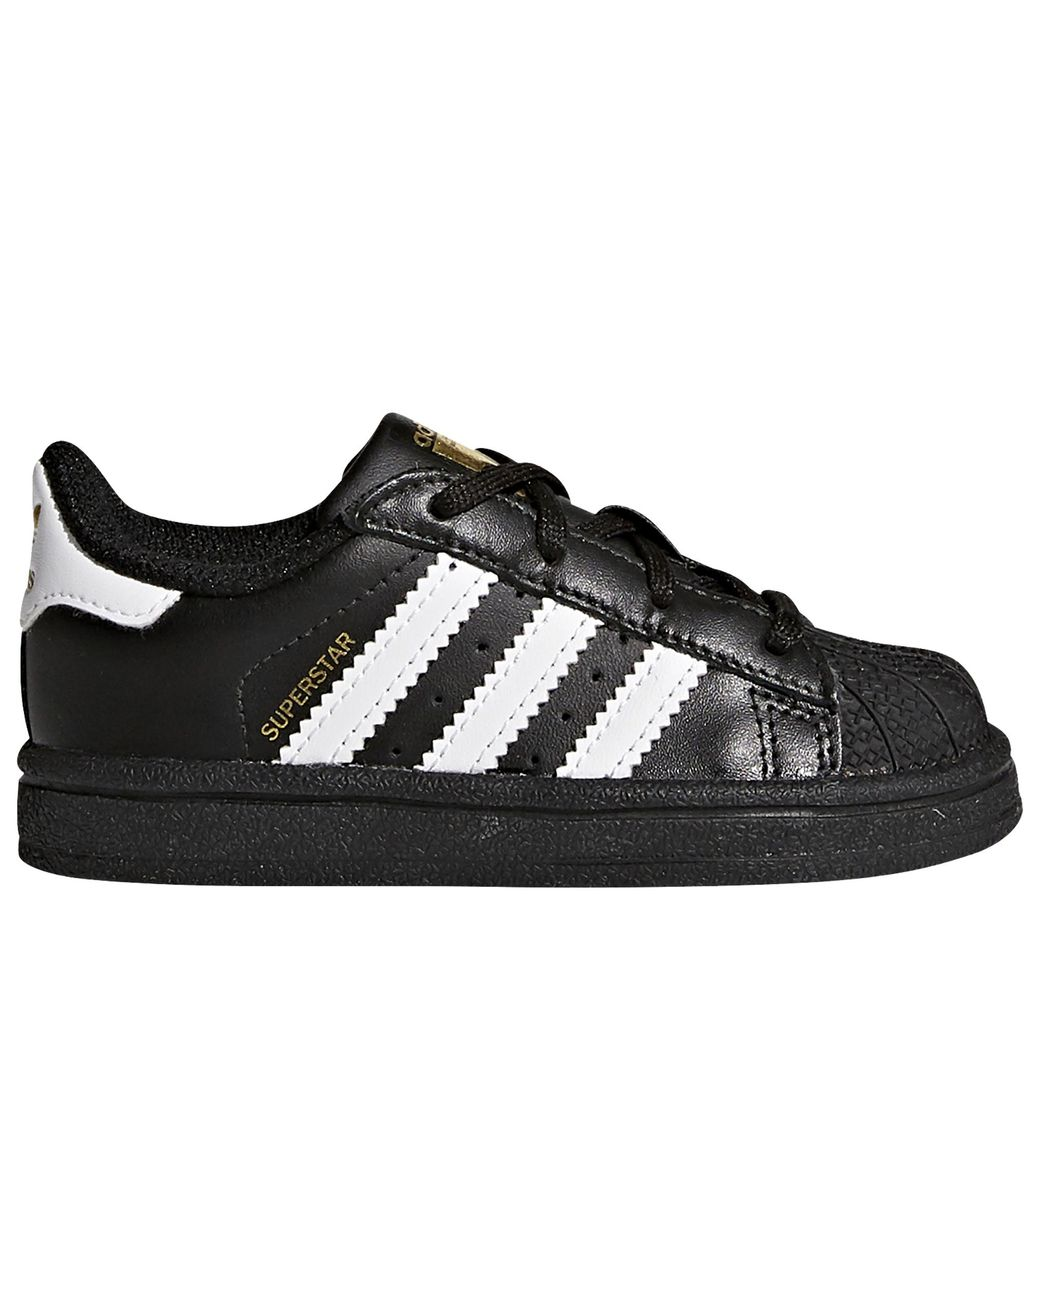 adidas superstar basketball shoes